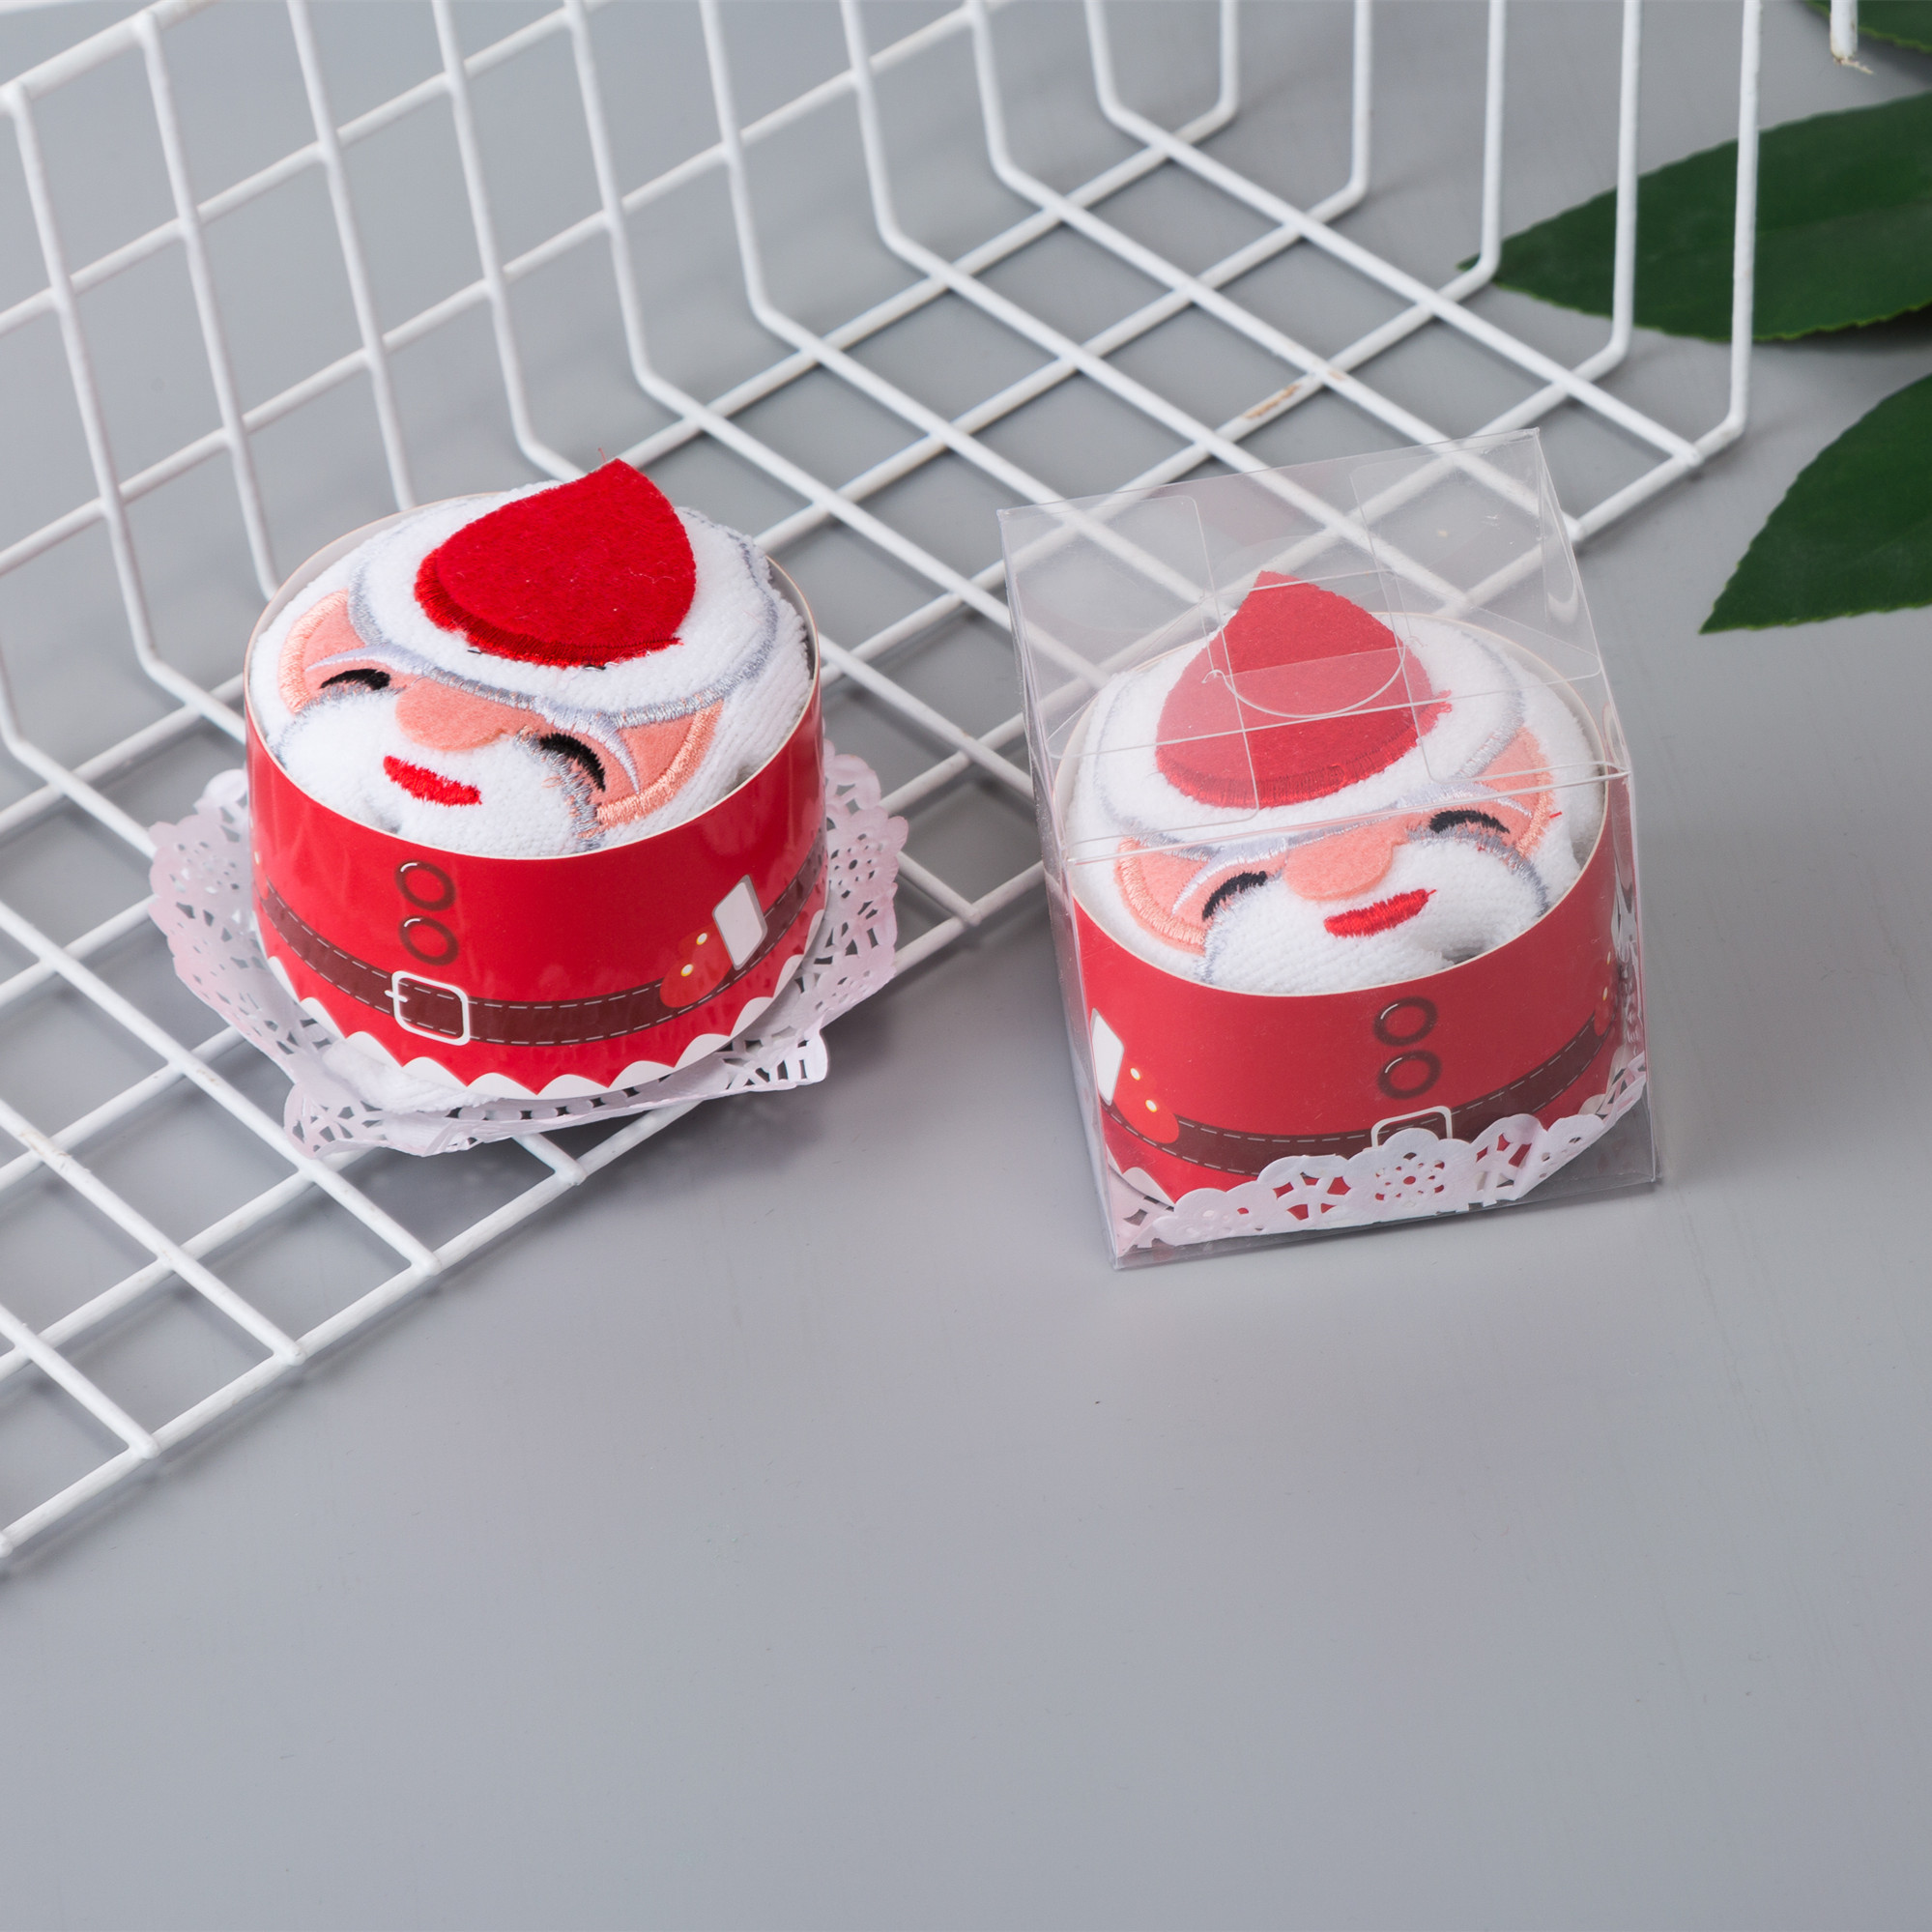 Christmas creative small gifts wholesale practical return cake shape small towel children's students